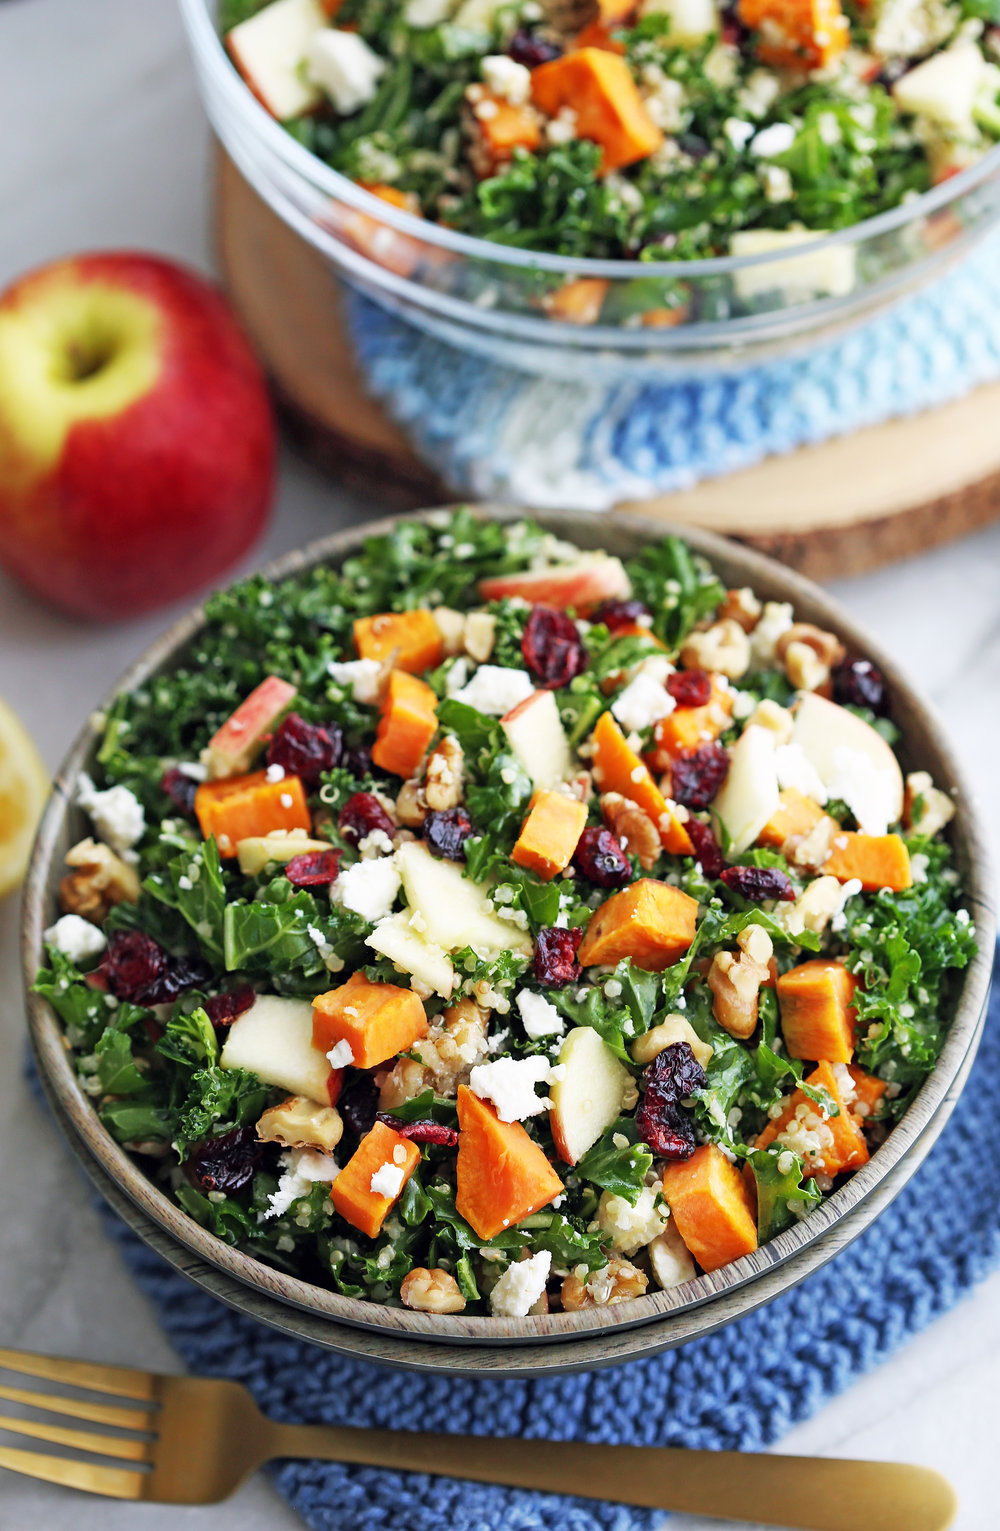 A closeup of a bowl of a kale salad with pieces of sweet potato, quinoa, apples, dried cranberries, feta, and walnuts.